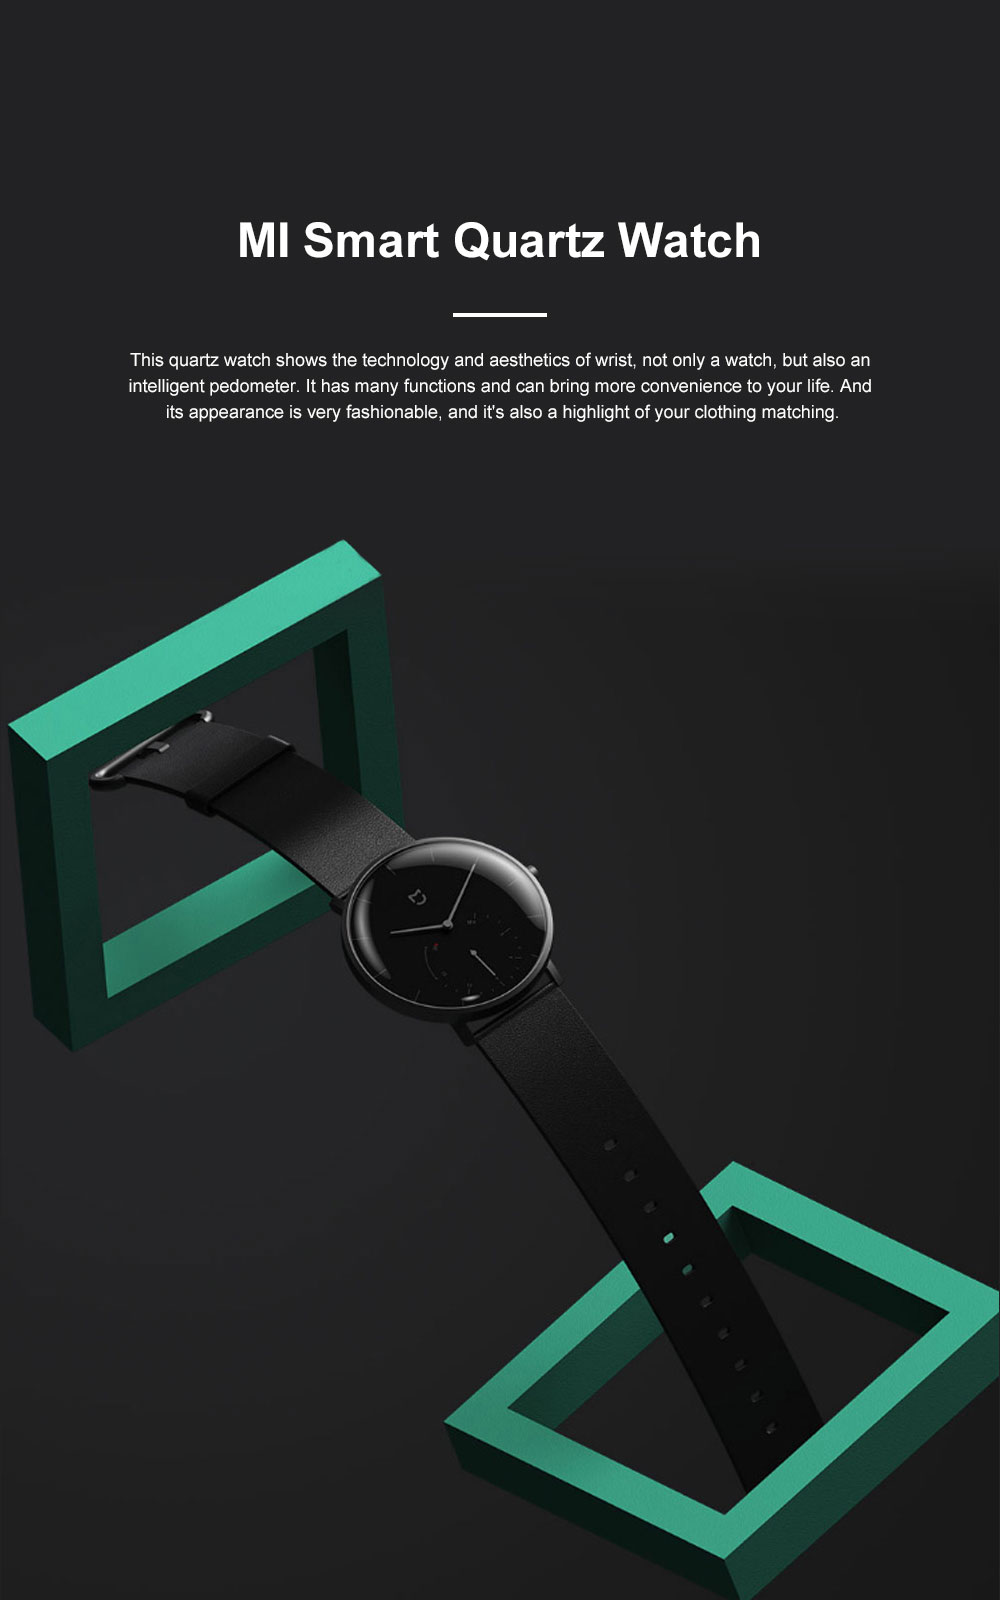 XIAOMI MIJIA Smart Quartz Watch Waterproof Android iOS Time Android Smartwatch with Waterproof Genuine Leather Band 0